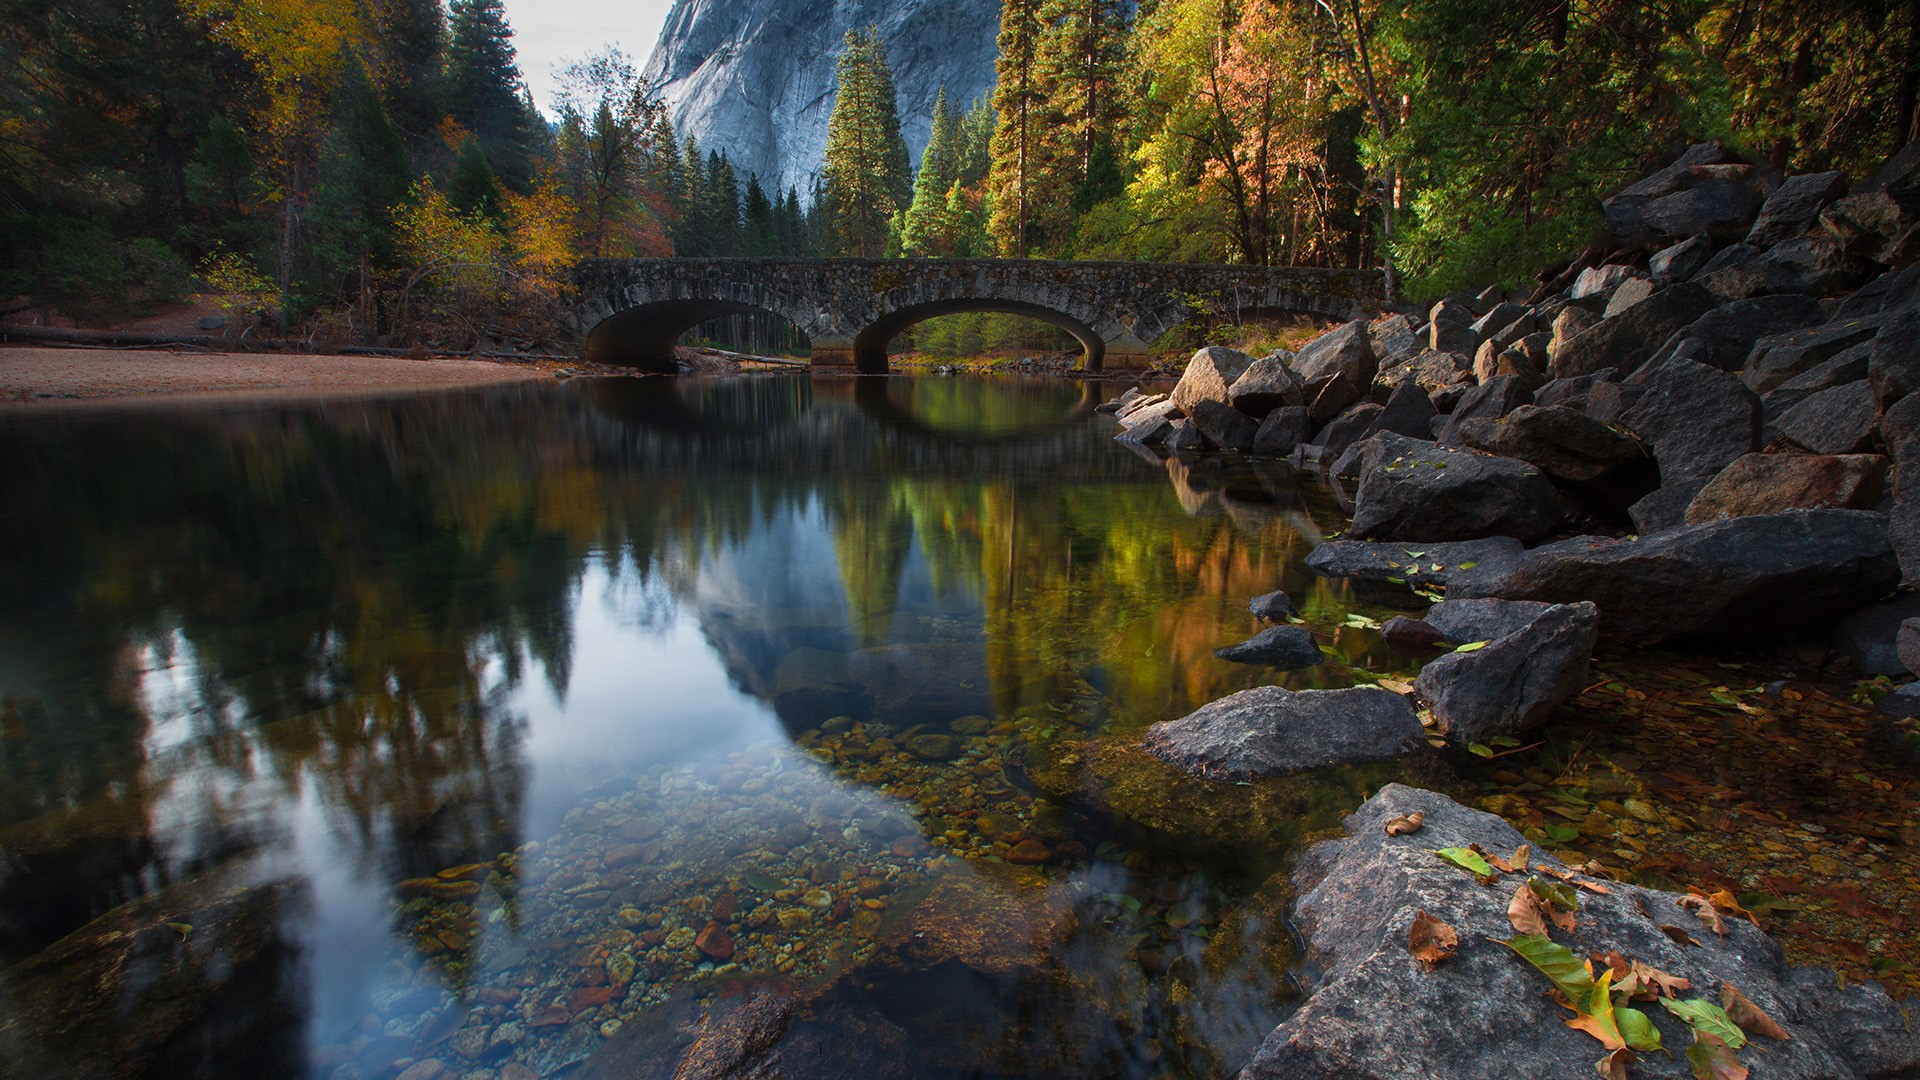 Bridge Over The Merced River In Yosemite National Park